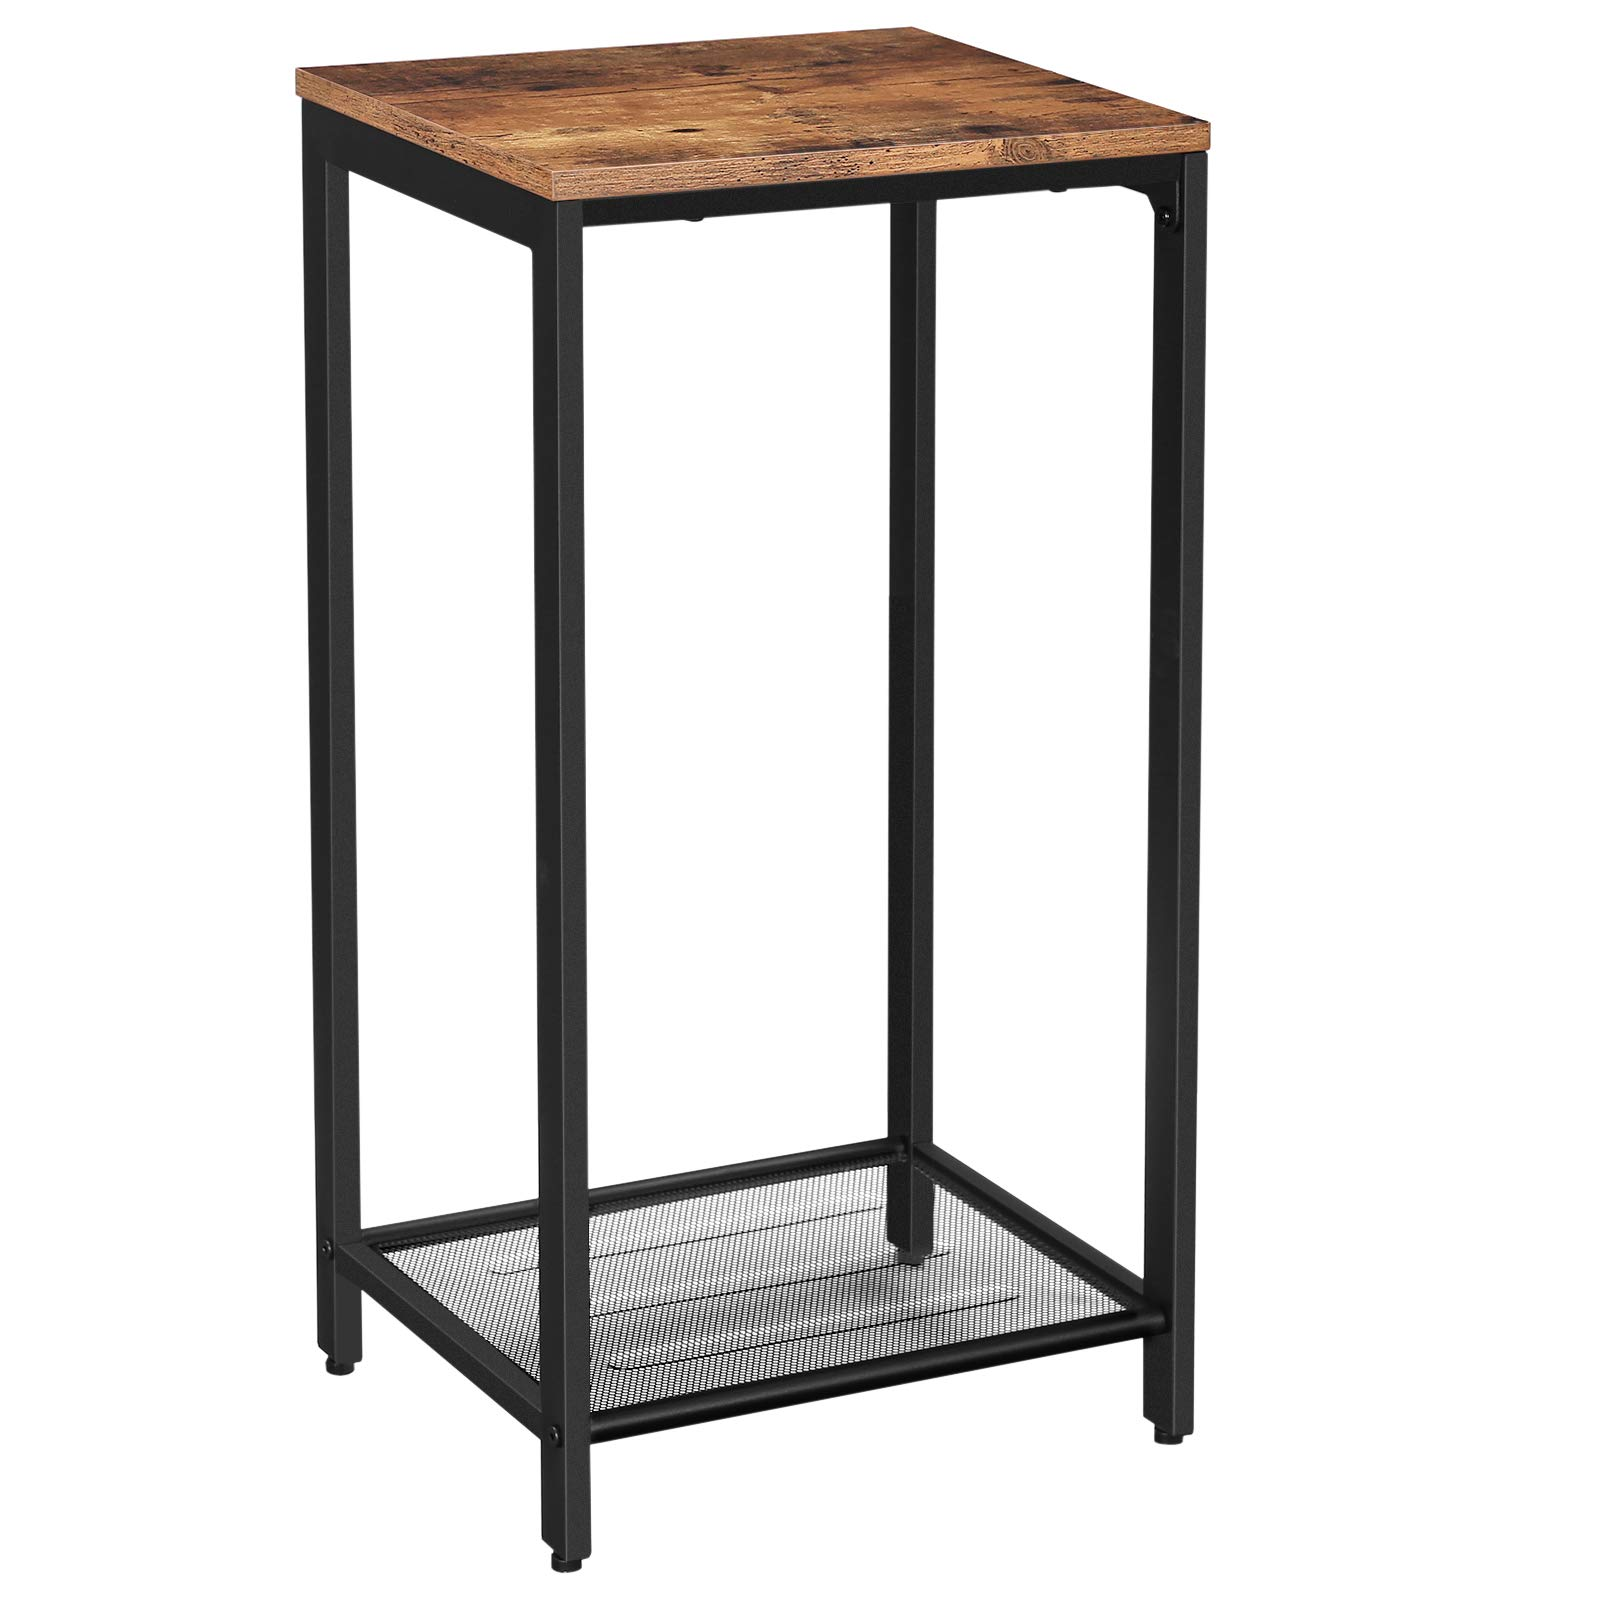 VASAGLE INDESTIC Side Table, End Table, Telephone Table with Mesh Shelf, High and Narrow, Hallway, Living Room, Metal, Easy Assembly, Space Saving, Industrial, Rustic Brown ULET76BX by VASAGLE